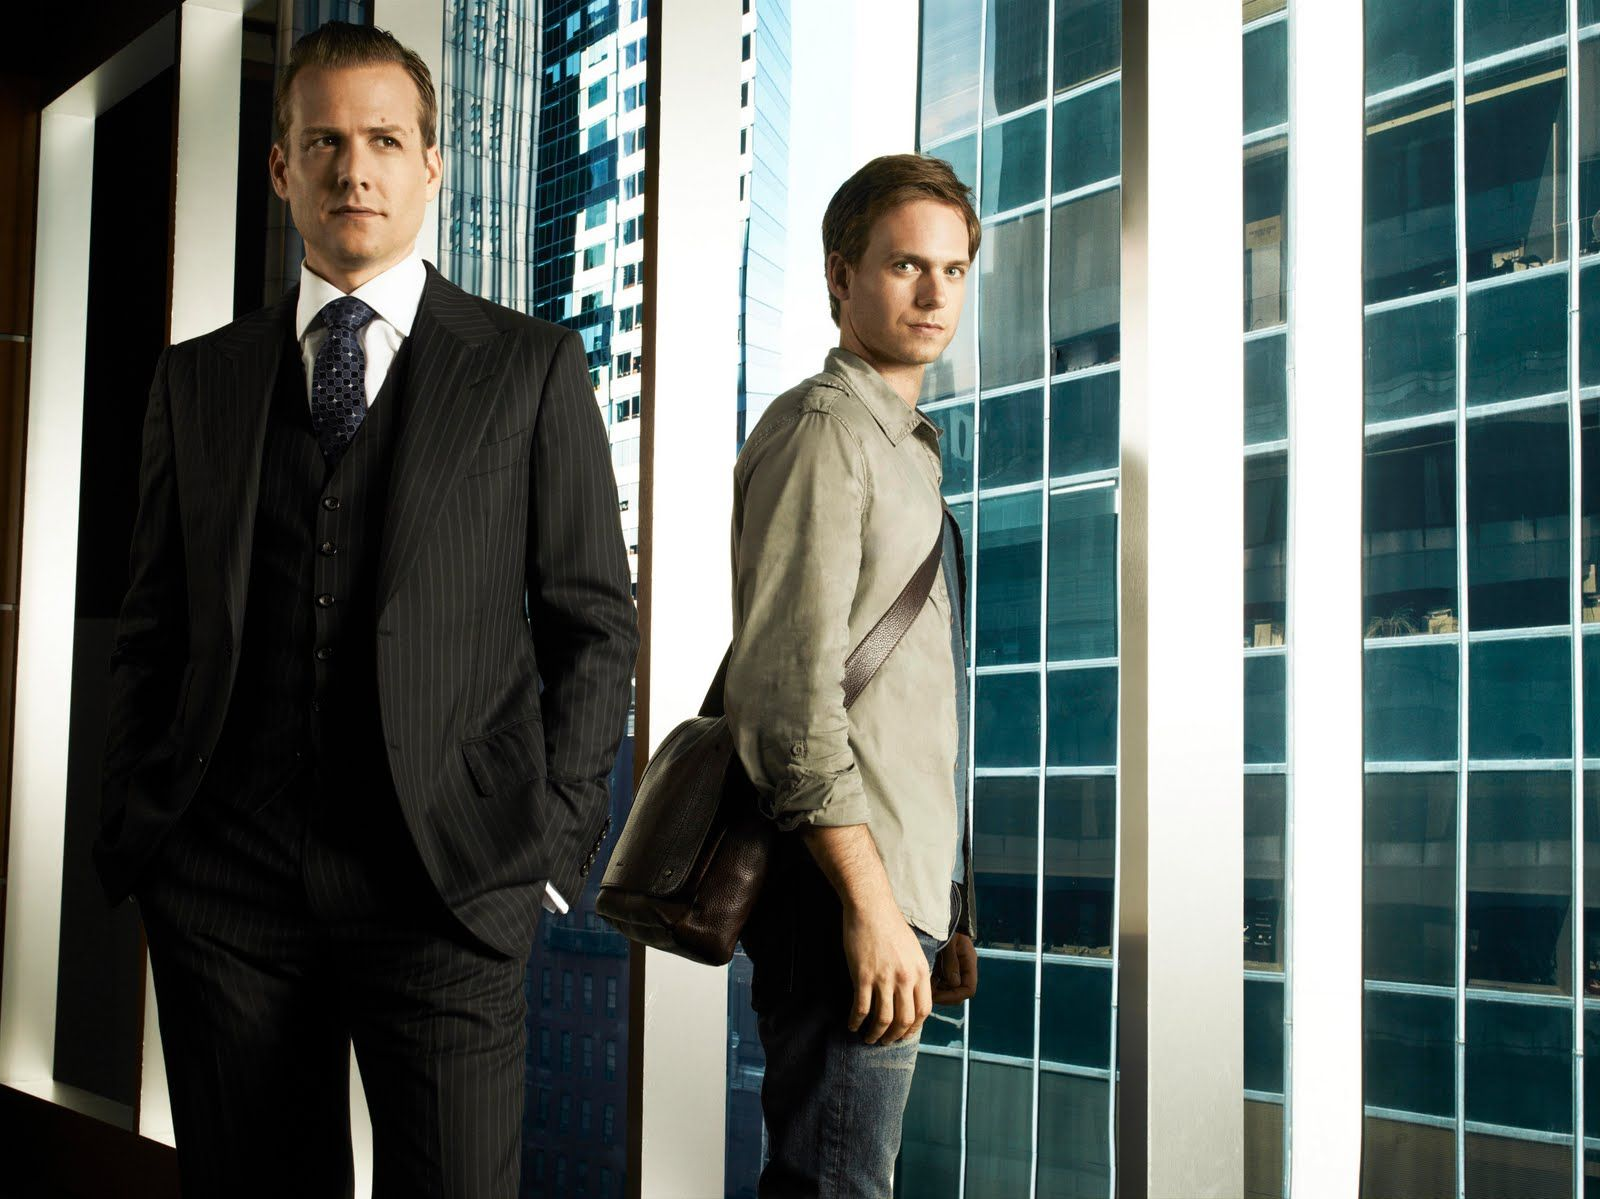 Suits I M Kinda In Love With This Show And These Two Stud Muffins Suits Tv Series Suits Tv Shows Suits Tv